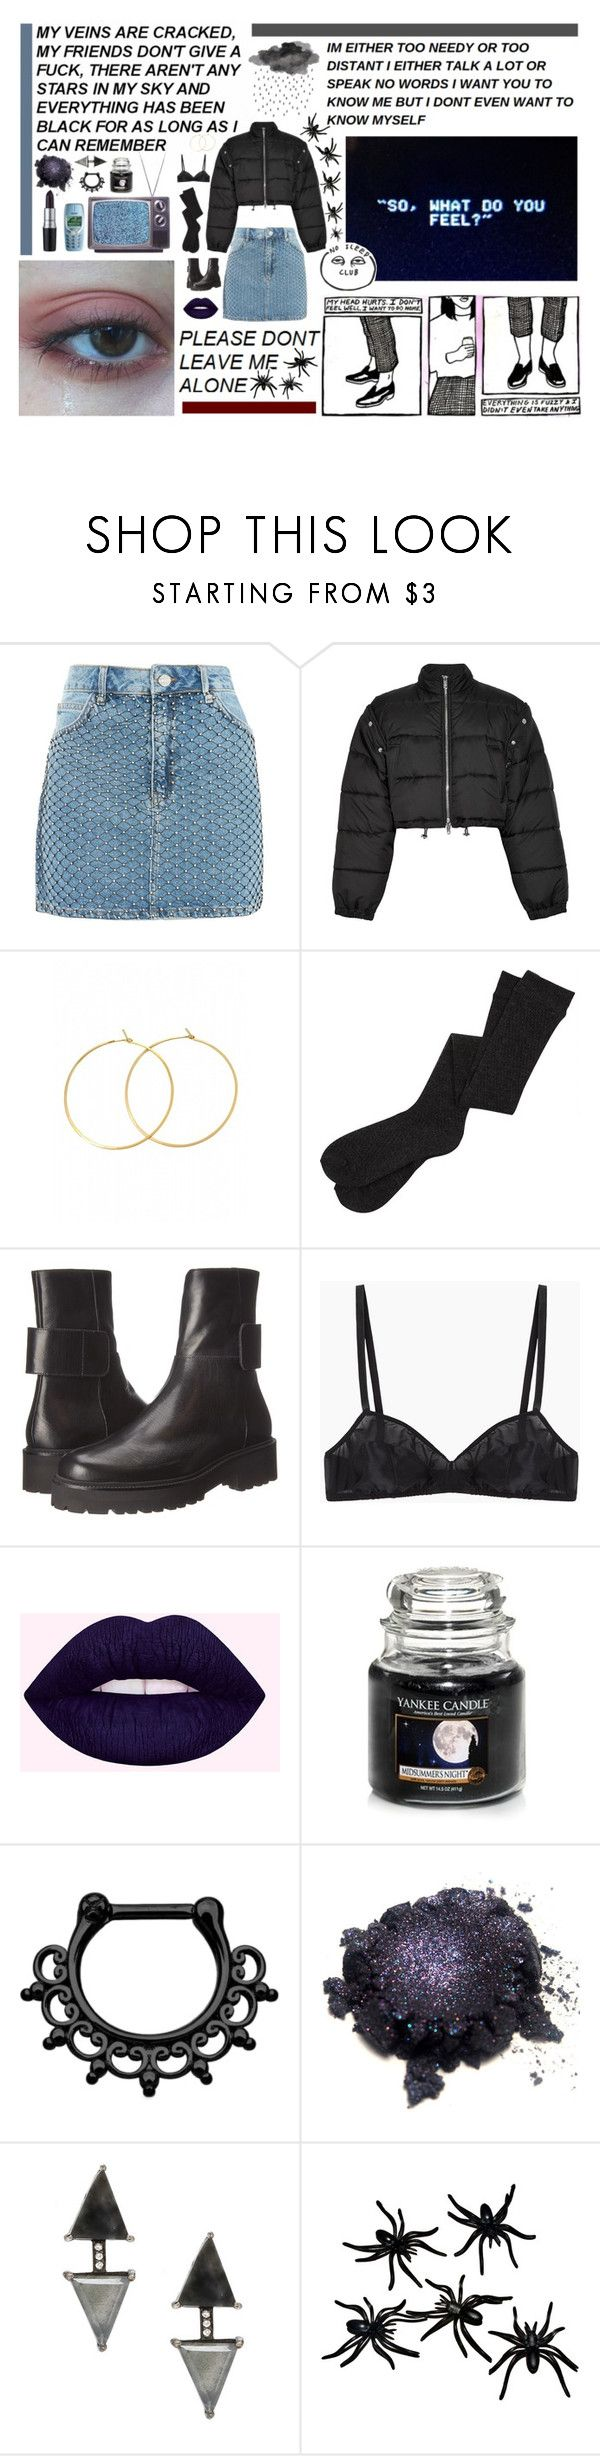 """guess I'll go home to my cats... alone..."" by kayleeinfinity ❤ liked on Polyvore featuring Topshop, 3.1 Phillip Lim, Charlene K, MM6 Maison Margiela, Araks, Nokia, Yankee Candle, M.A.C and ADORNIA"